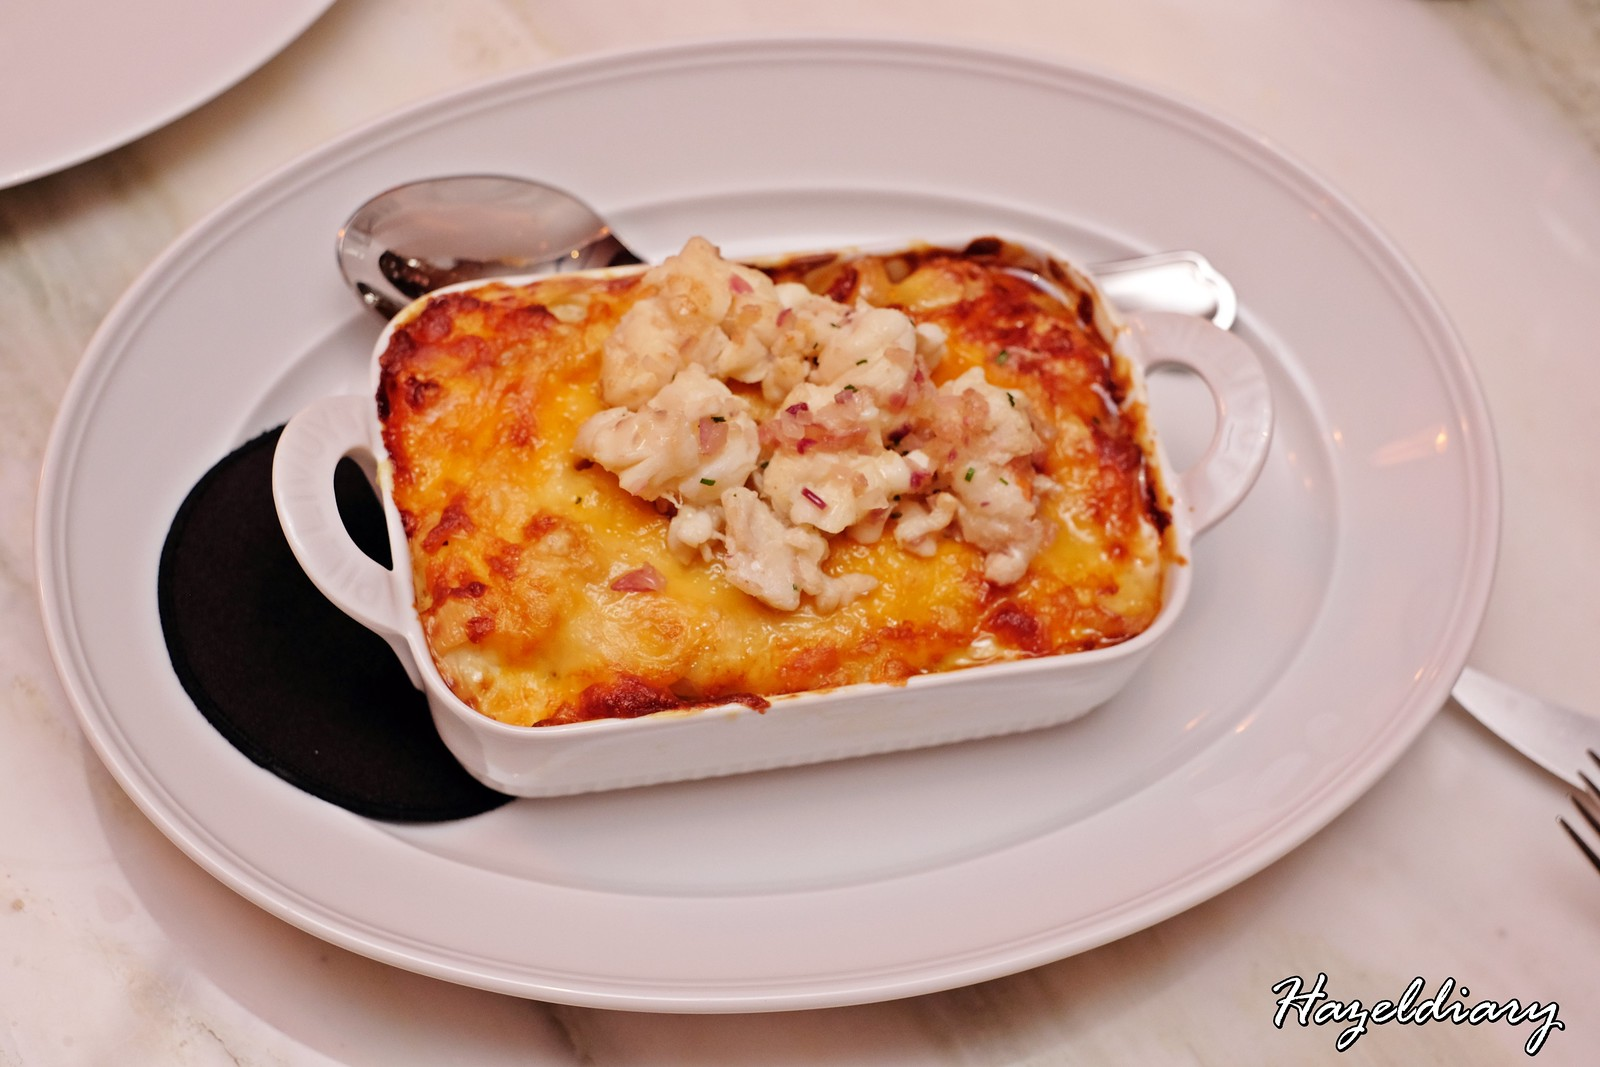 six Senses Brasserie -The Weekender's Brasserie Brunch-Mac and Cheese-1